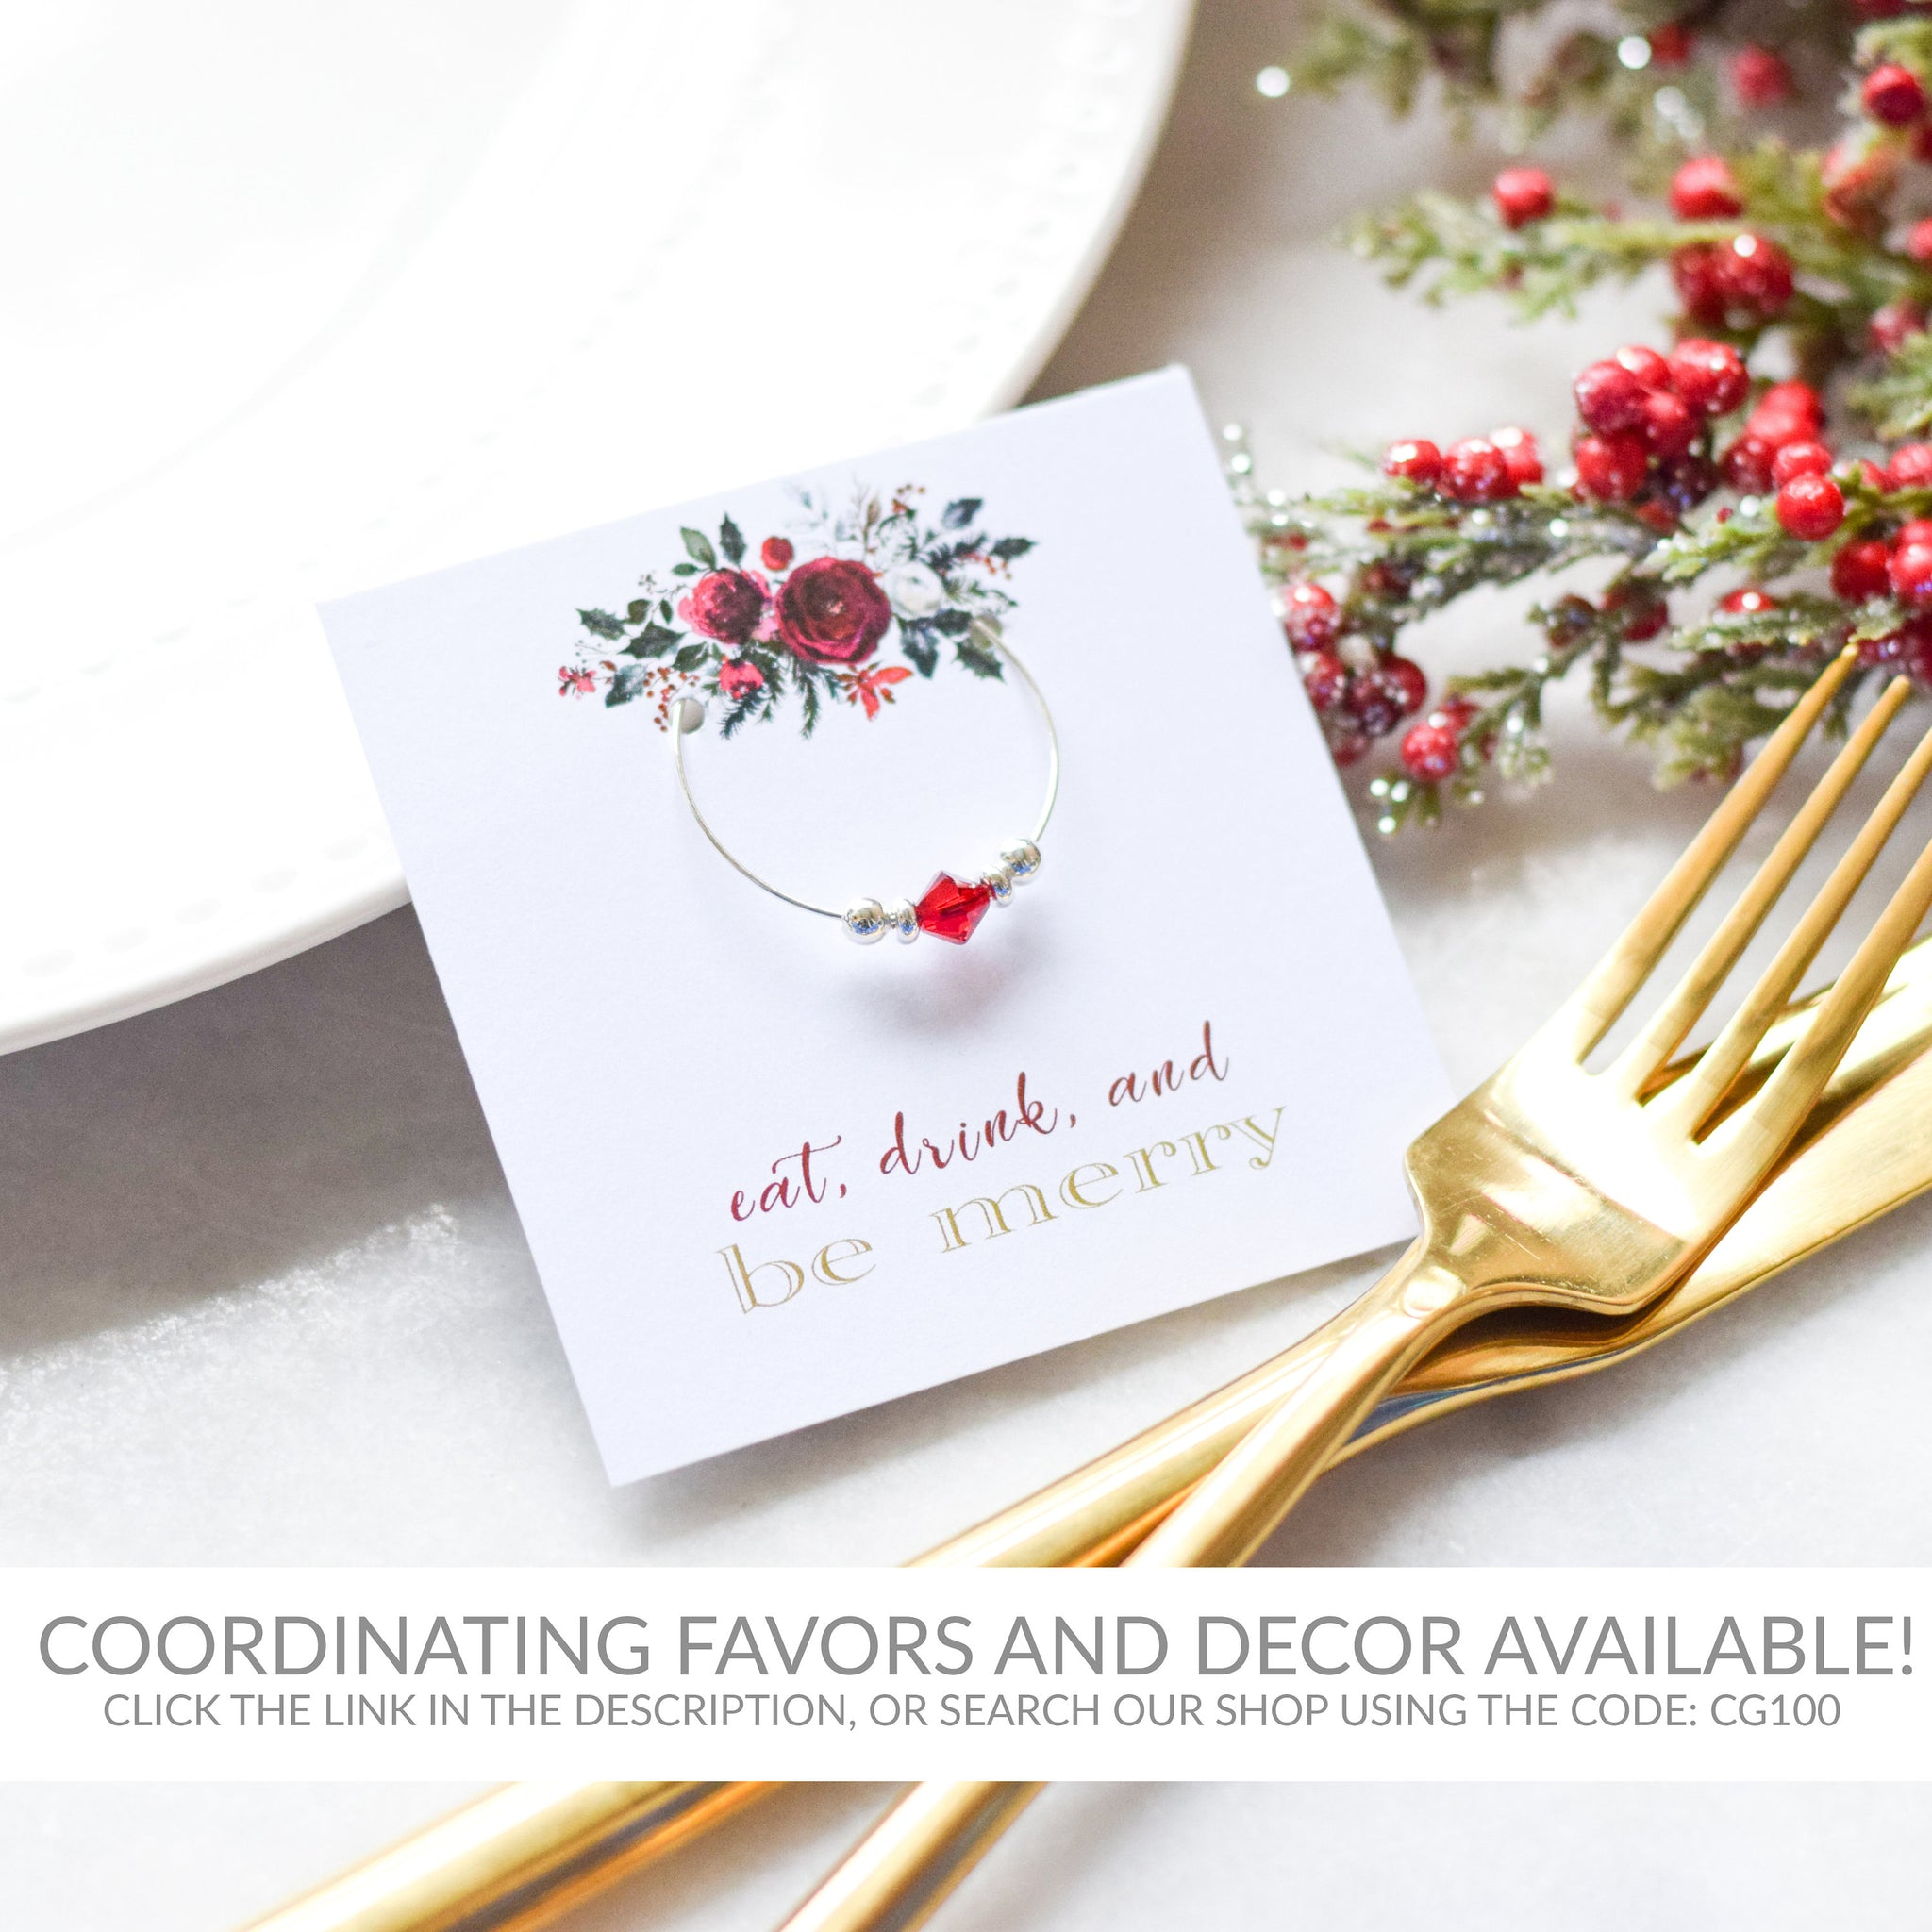 Christmas Wedding Cards and Gifts Sign Printable, Christmas Bridal Shower Cards and Gifts Printable Decorations, INSTANT DOWNLOAD - CG100 - @PlumPolkaDot